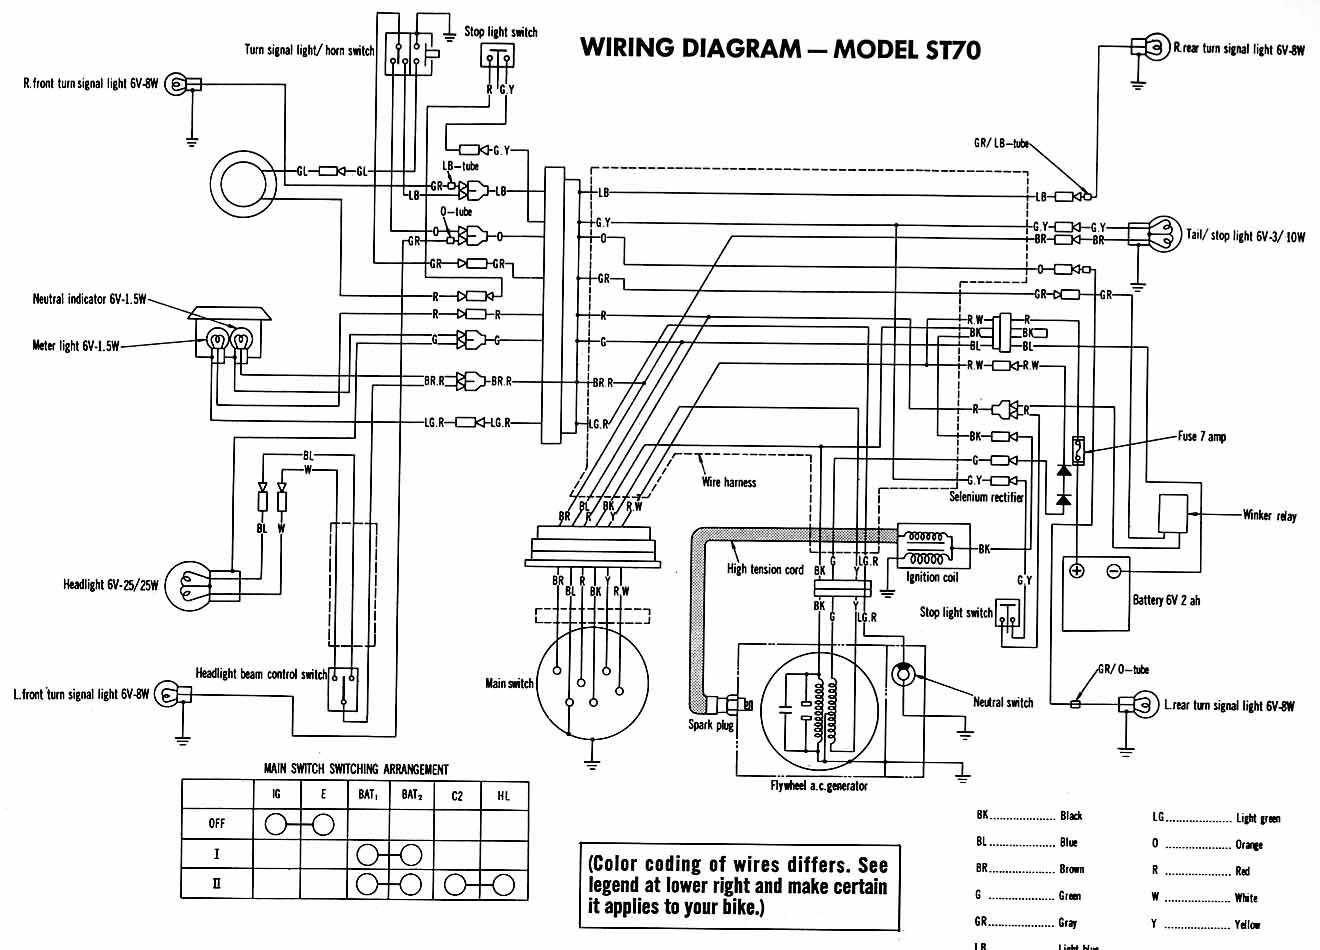 honda tl125 wiring diagram honda wiring diagrams honda wiring diagrams